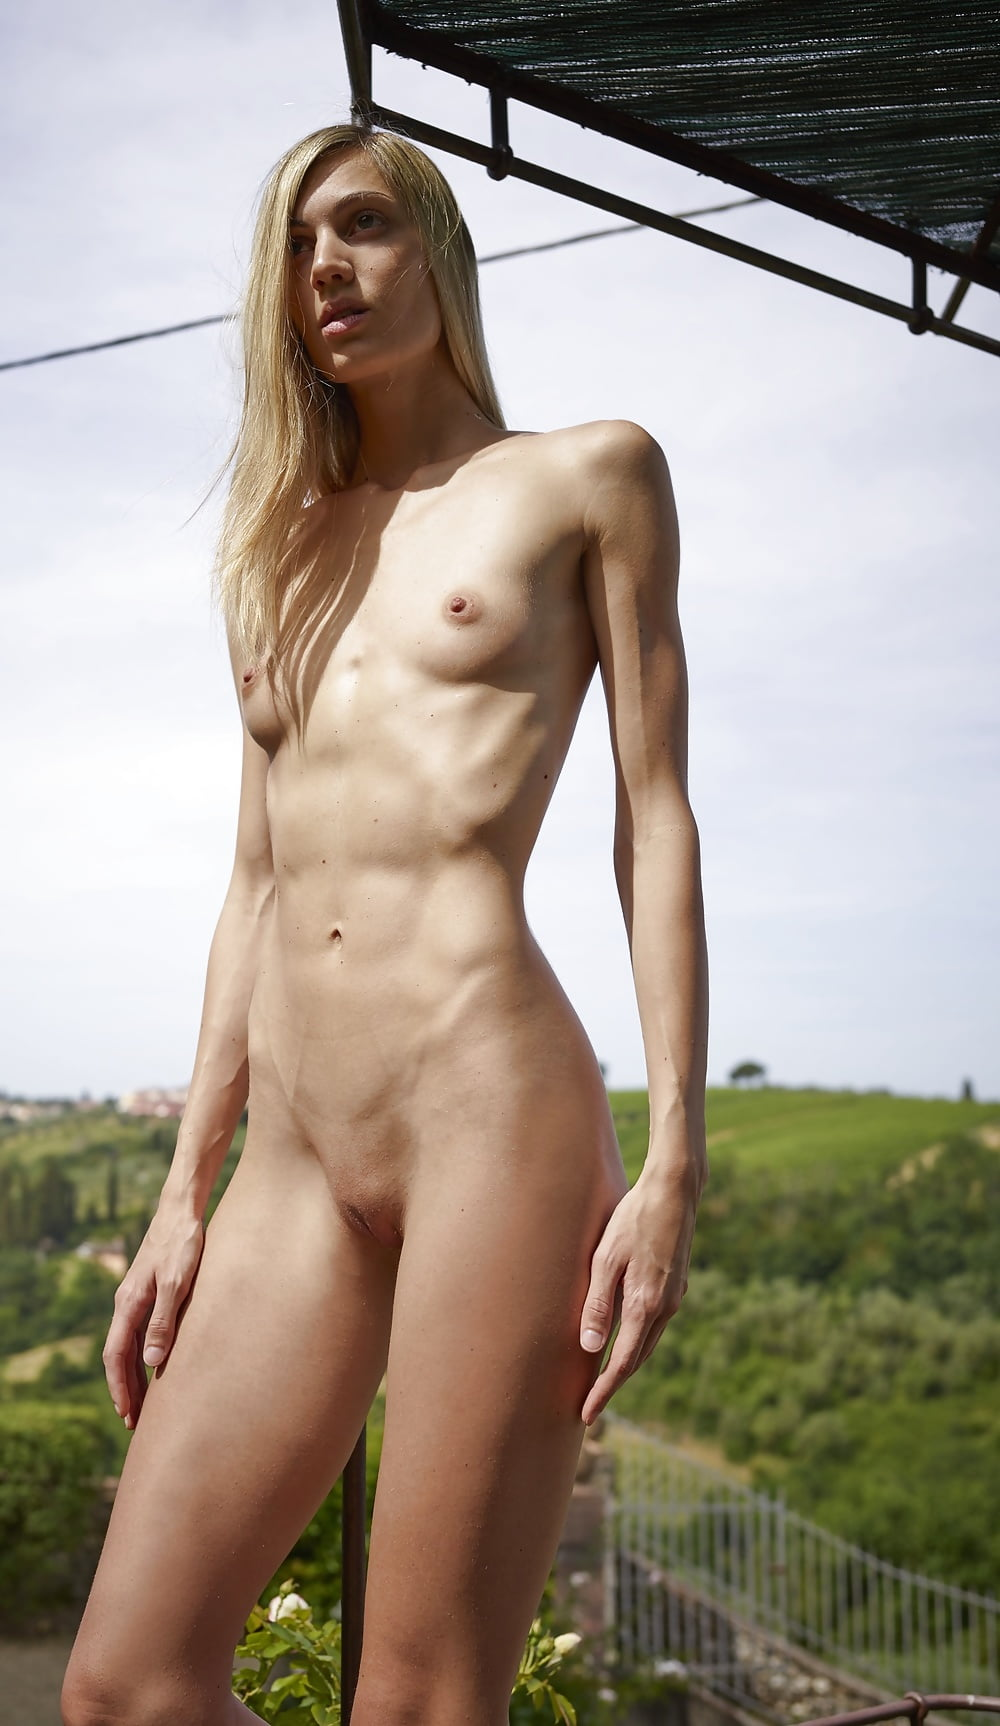 Tall and skinny nude women fucking